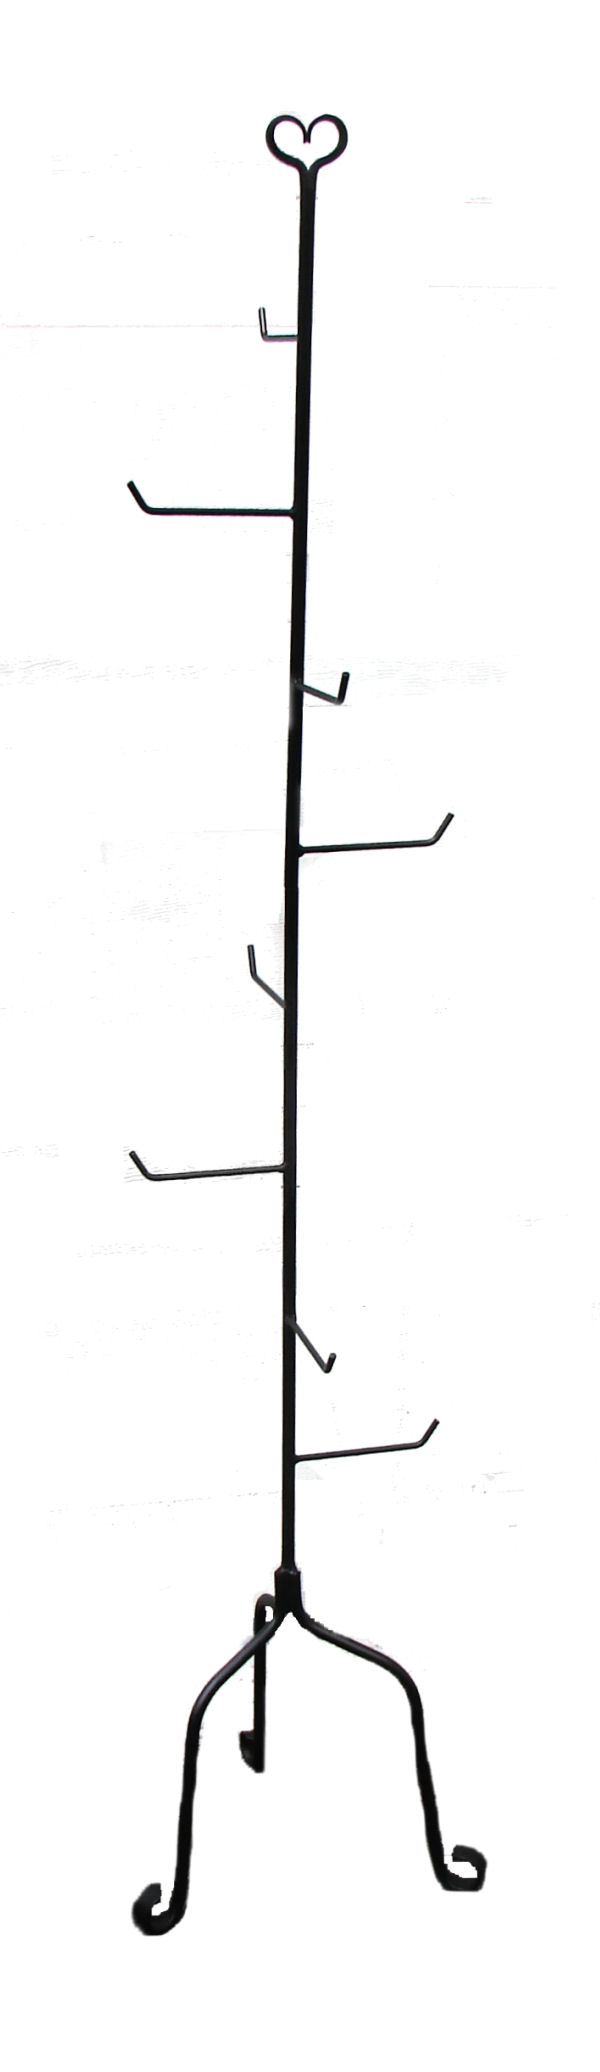 Wrought Iron Cupcake Display Racks and Pie Stands - Great for ...